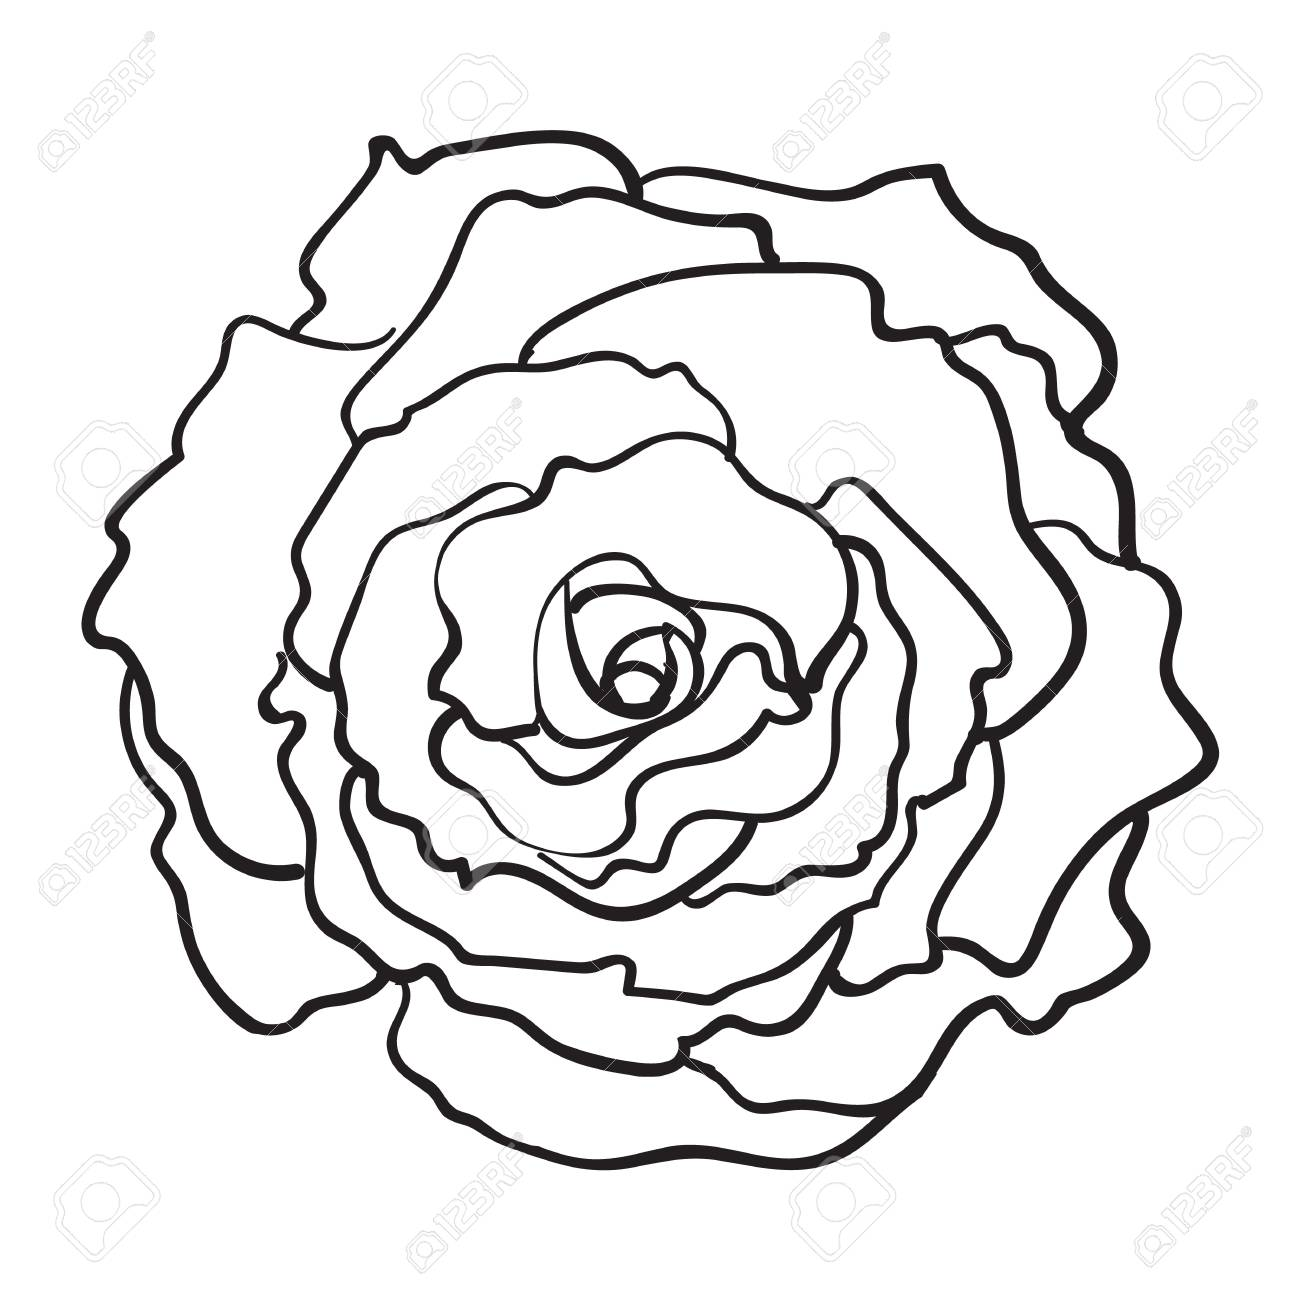 1300x1300 Deep Contour Rose Bud, Top View Sketch Style Vector Illustration